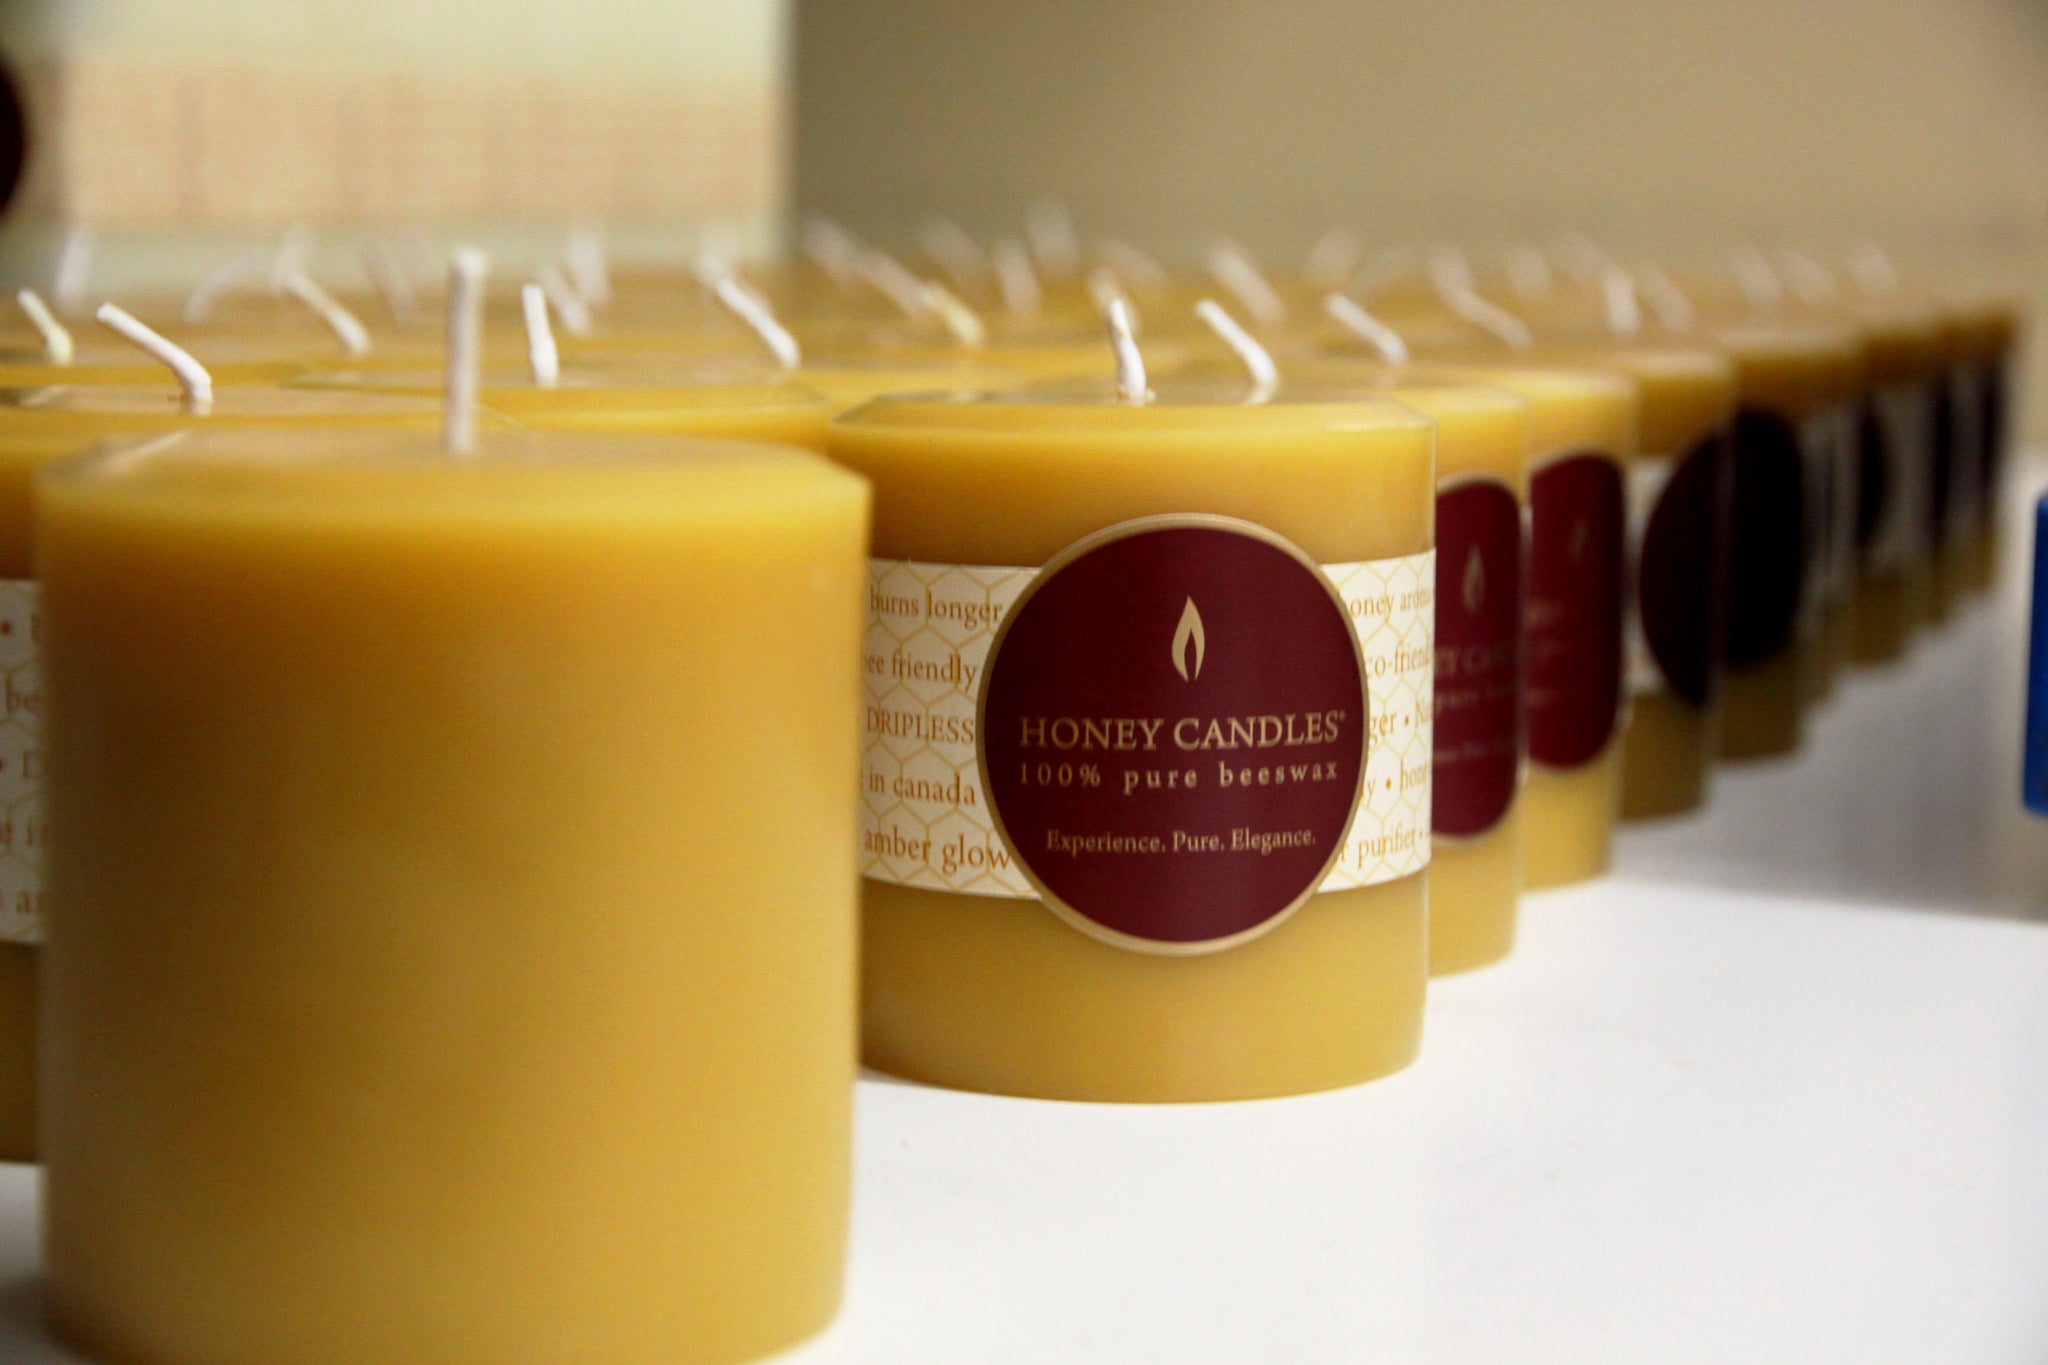 Beeswax Candles 101